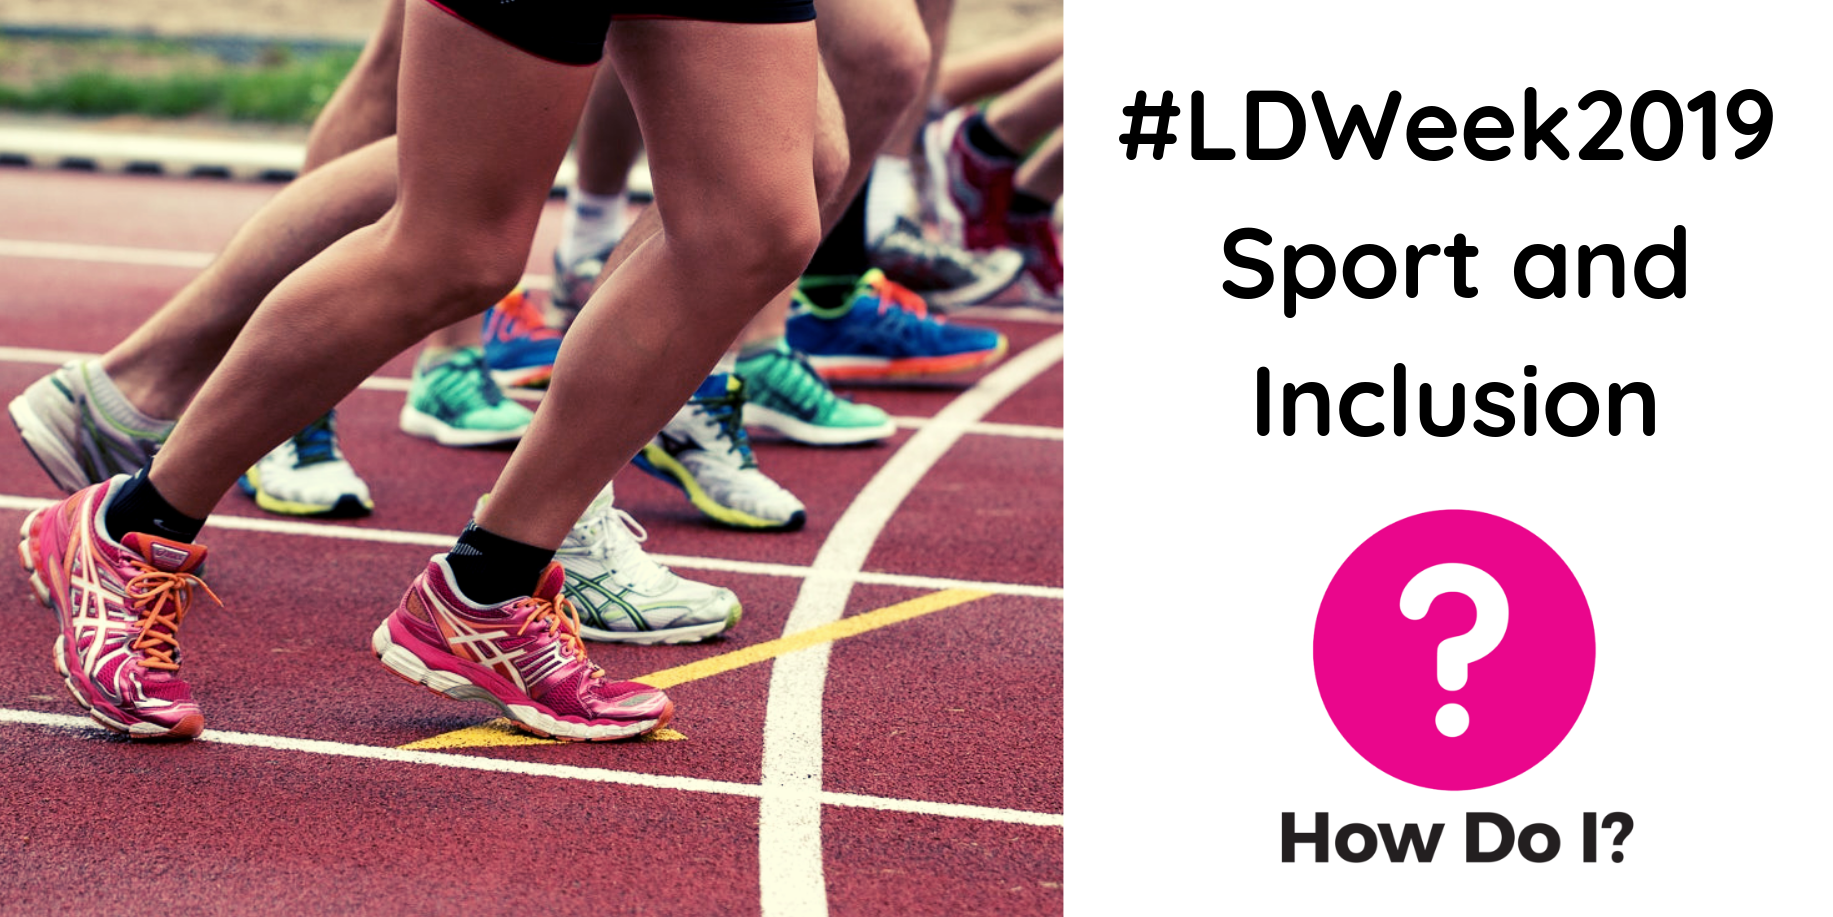 #LDWeek2019 Sport and Inclusion - How Do I? banner. Pictured is a closeup shot of the feet of a group of runners on a running track. They are all wearing trainers and the camera focuses on a pair of pink trainers in particular.